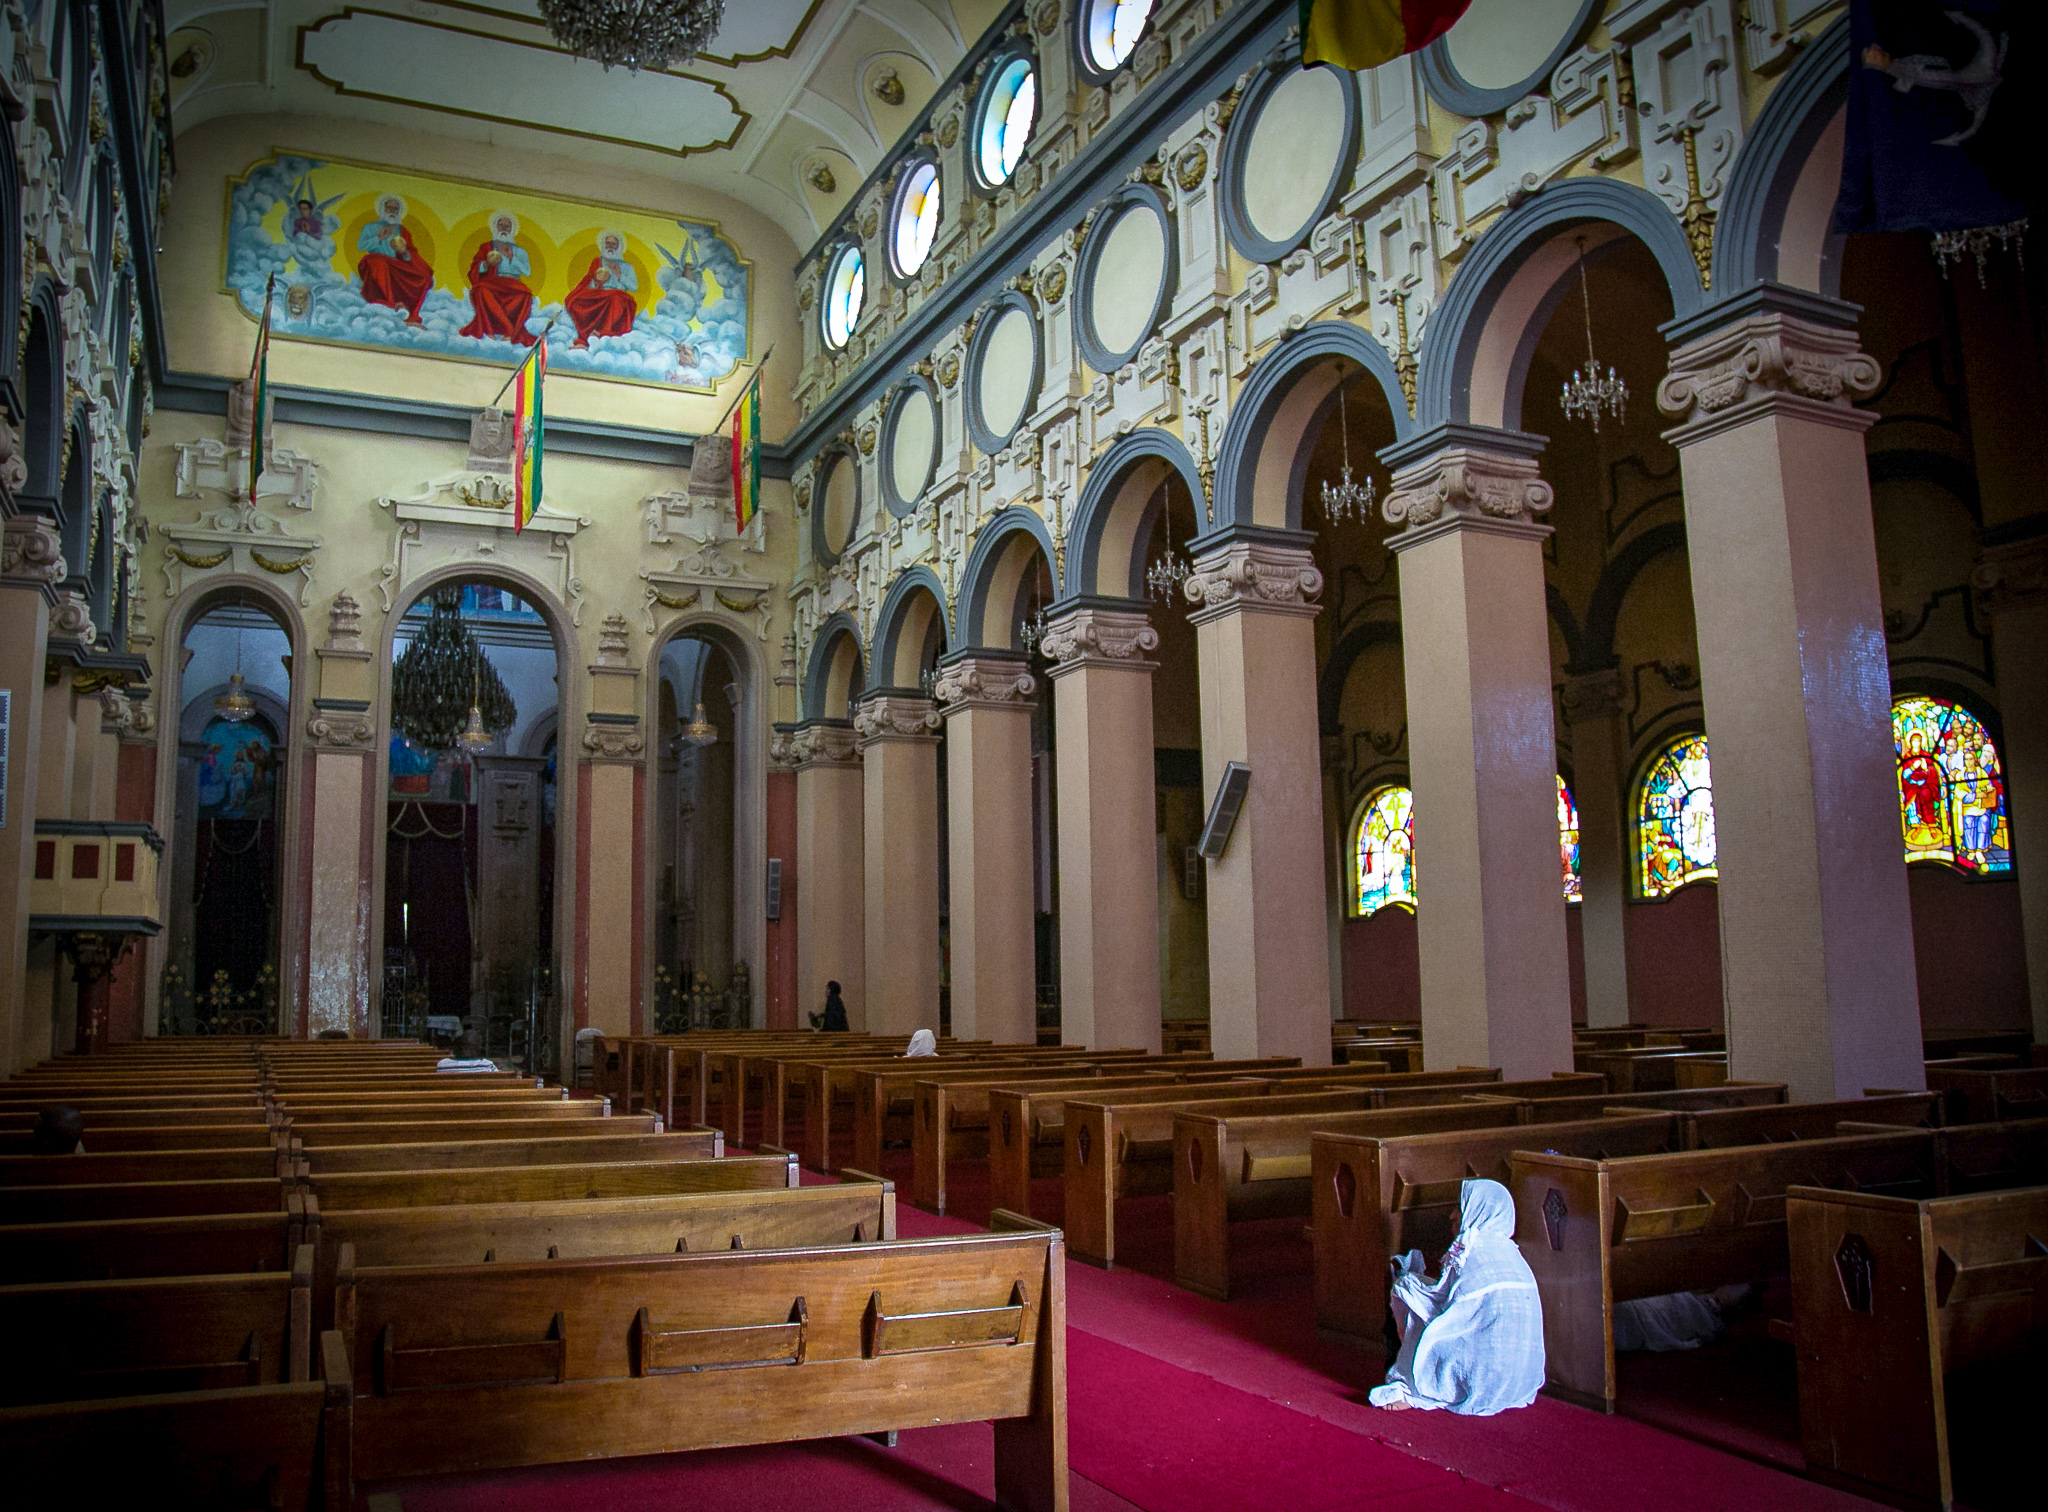 Inside an Ethiopian Orthodox church in Ethiopia's capital city of Addis Ababa © Kim I. Mott, all rights reserved